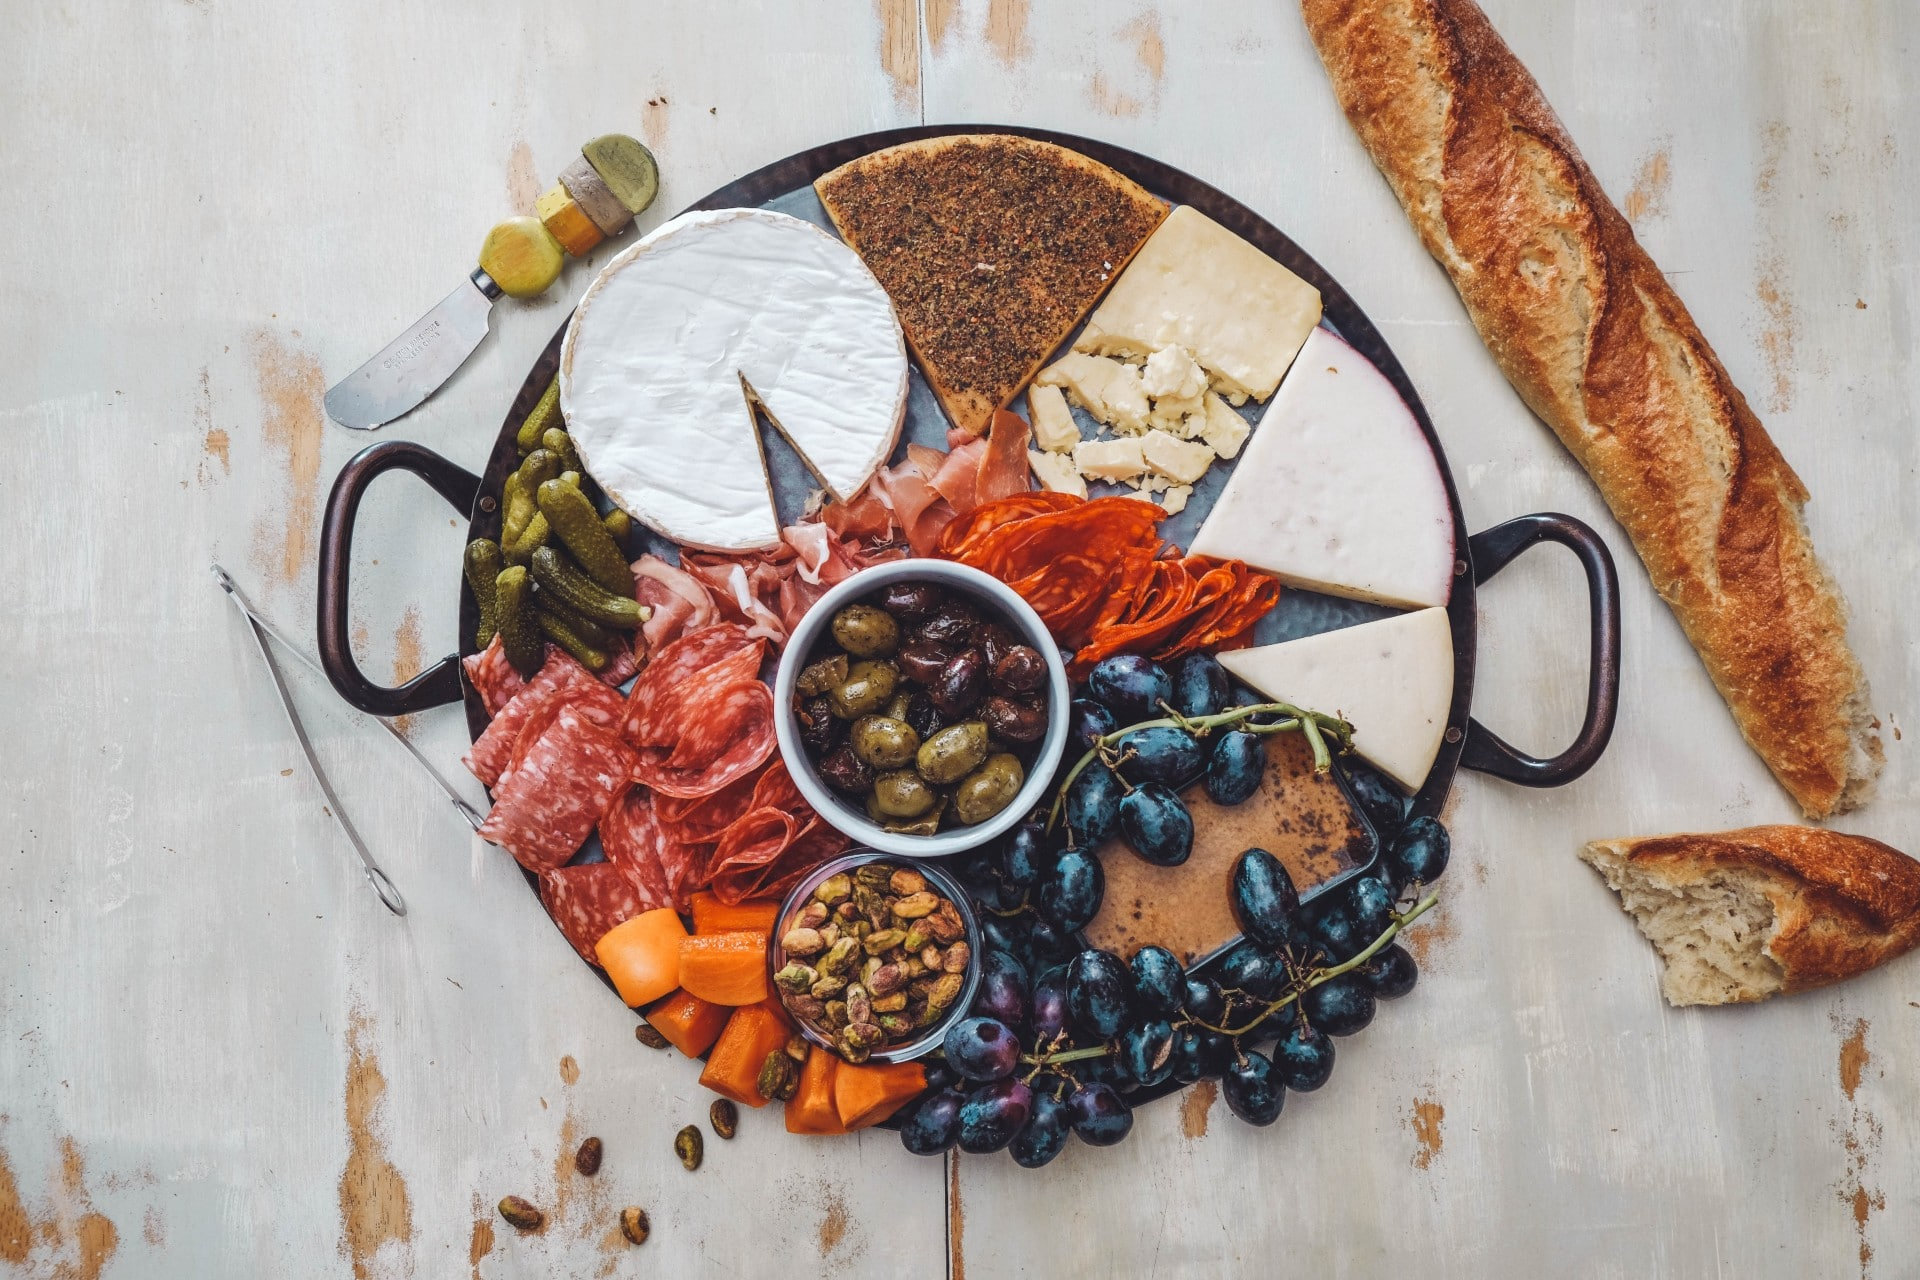 a cheese and meat charcuterie board